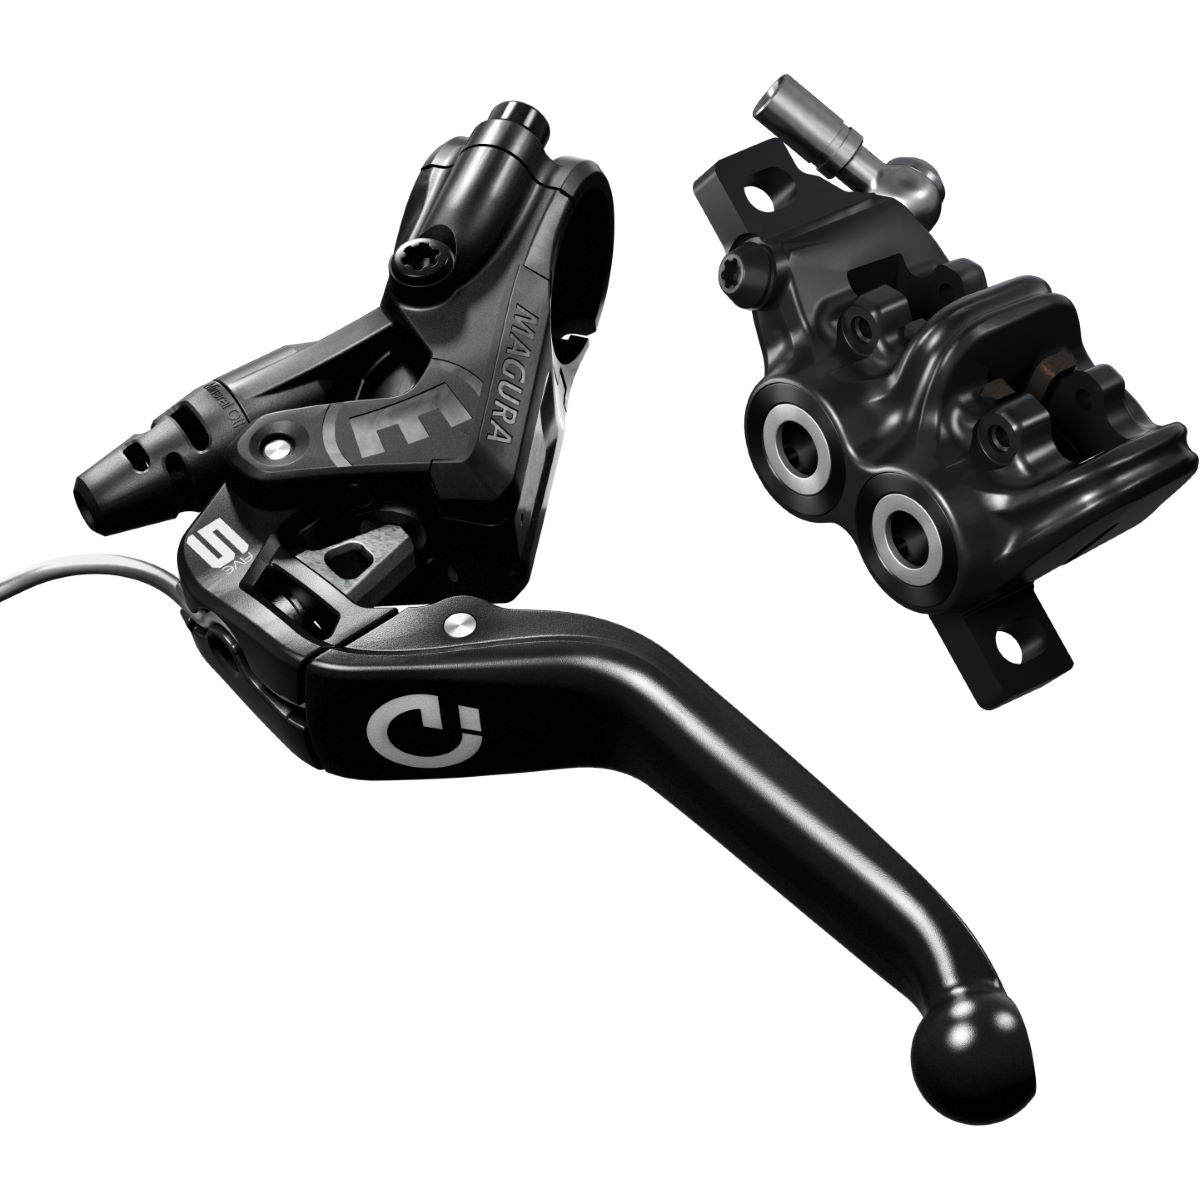 Magura MT5e HIGO-Closer MTB Disc Brake - Frenos de disco